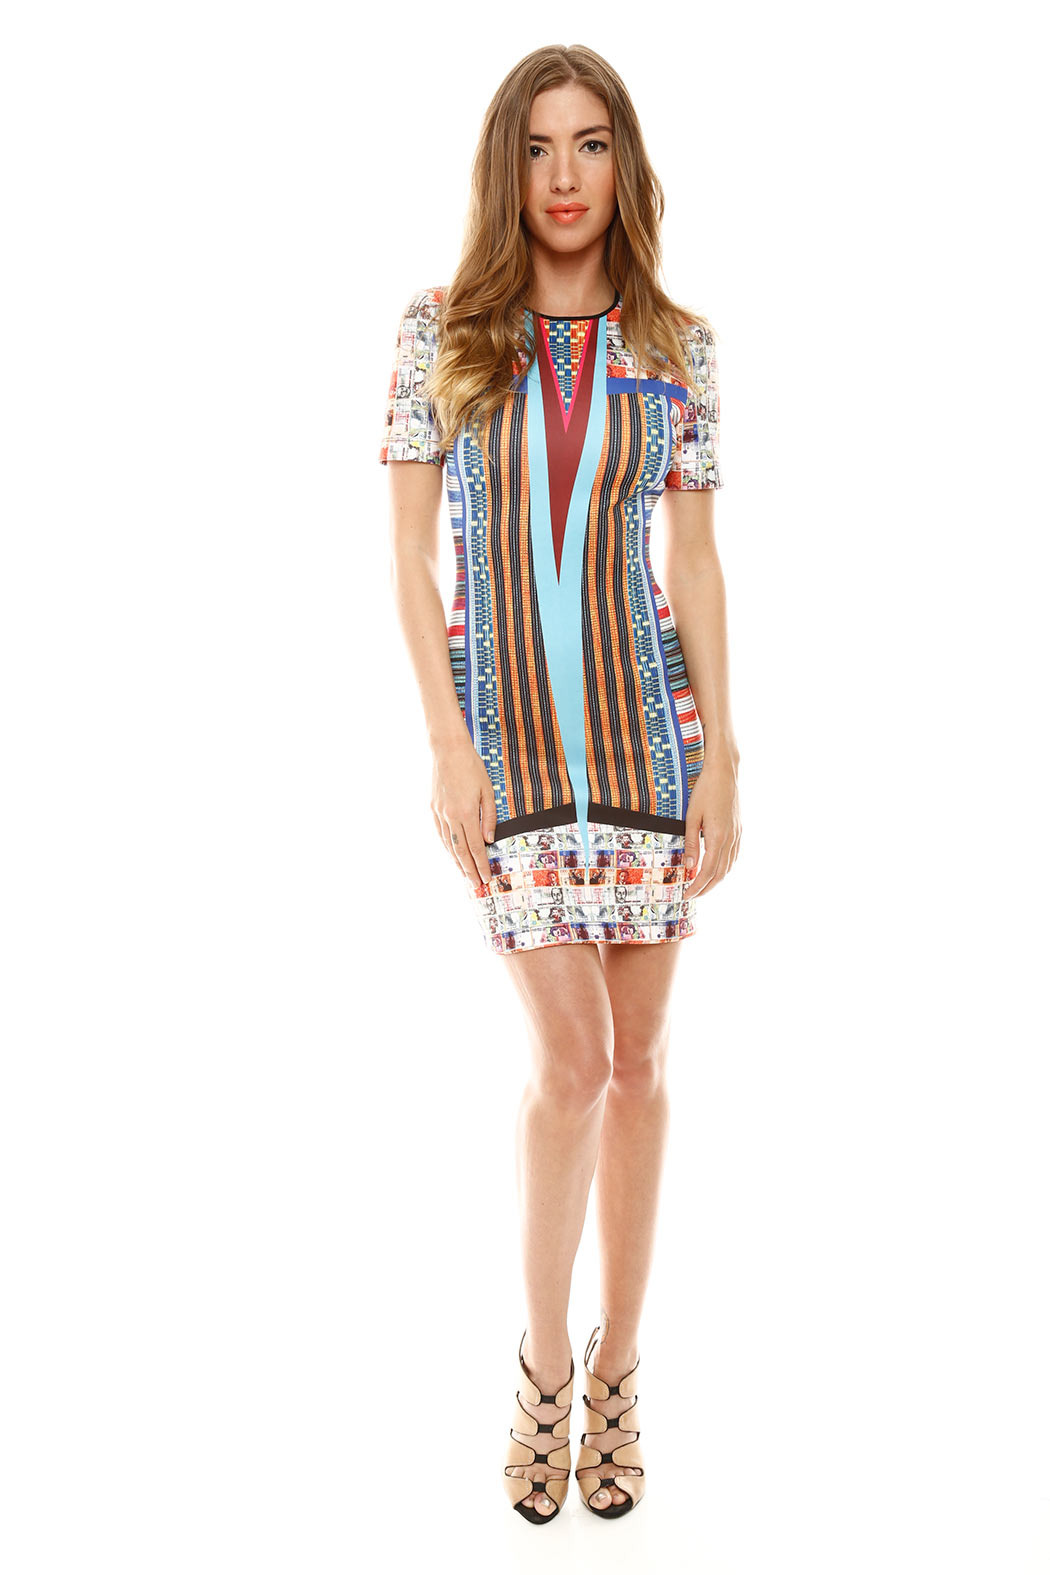 Clover Canyon Short Sleeve Pesos Dress From Burlington By Sweet Lady